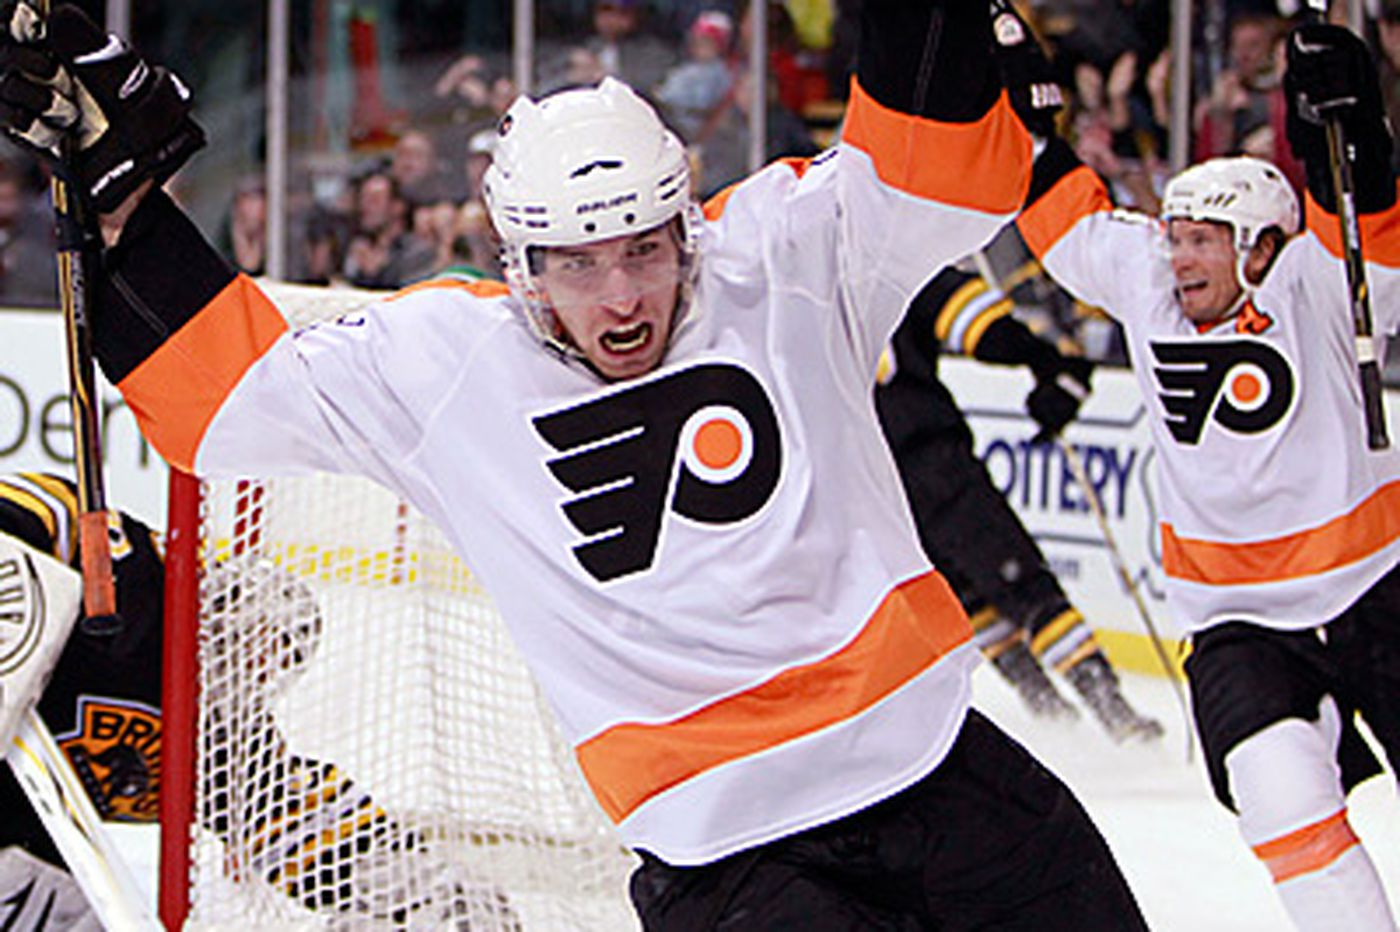 Mike Richards' OT goal boosts Flyers to win over Bruins